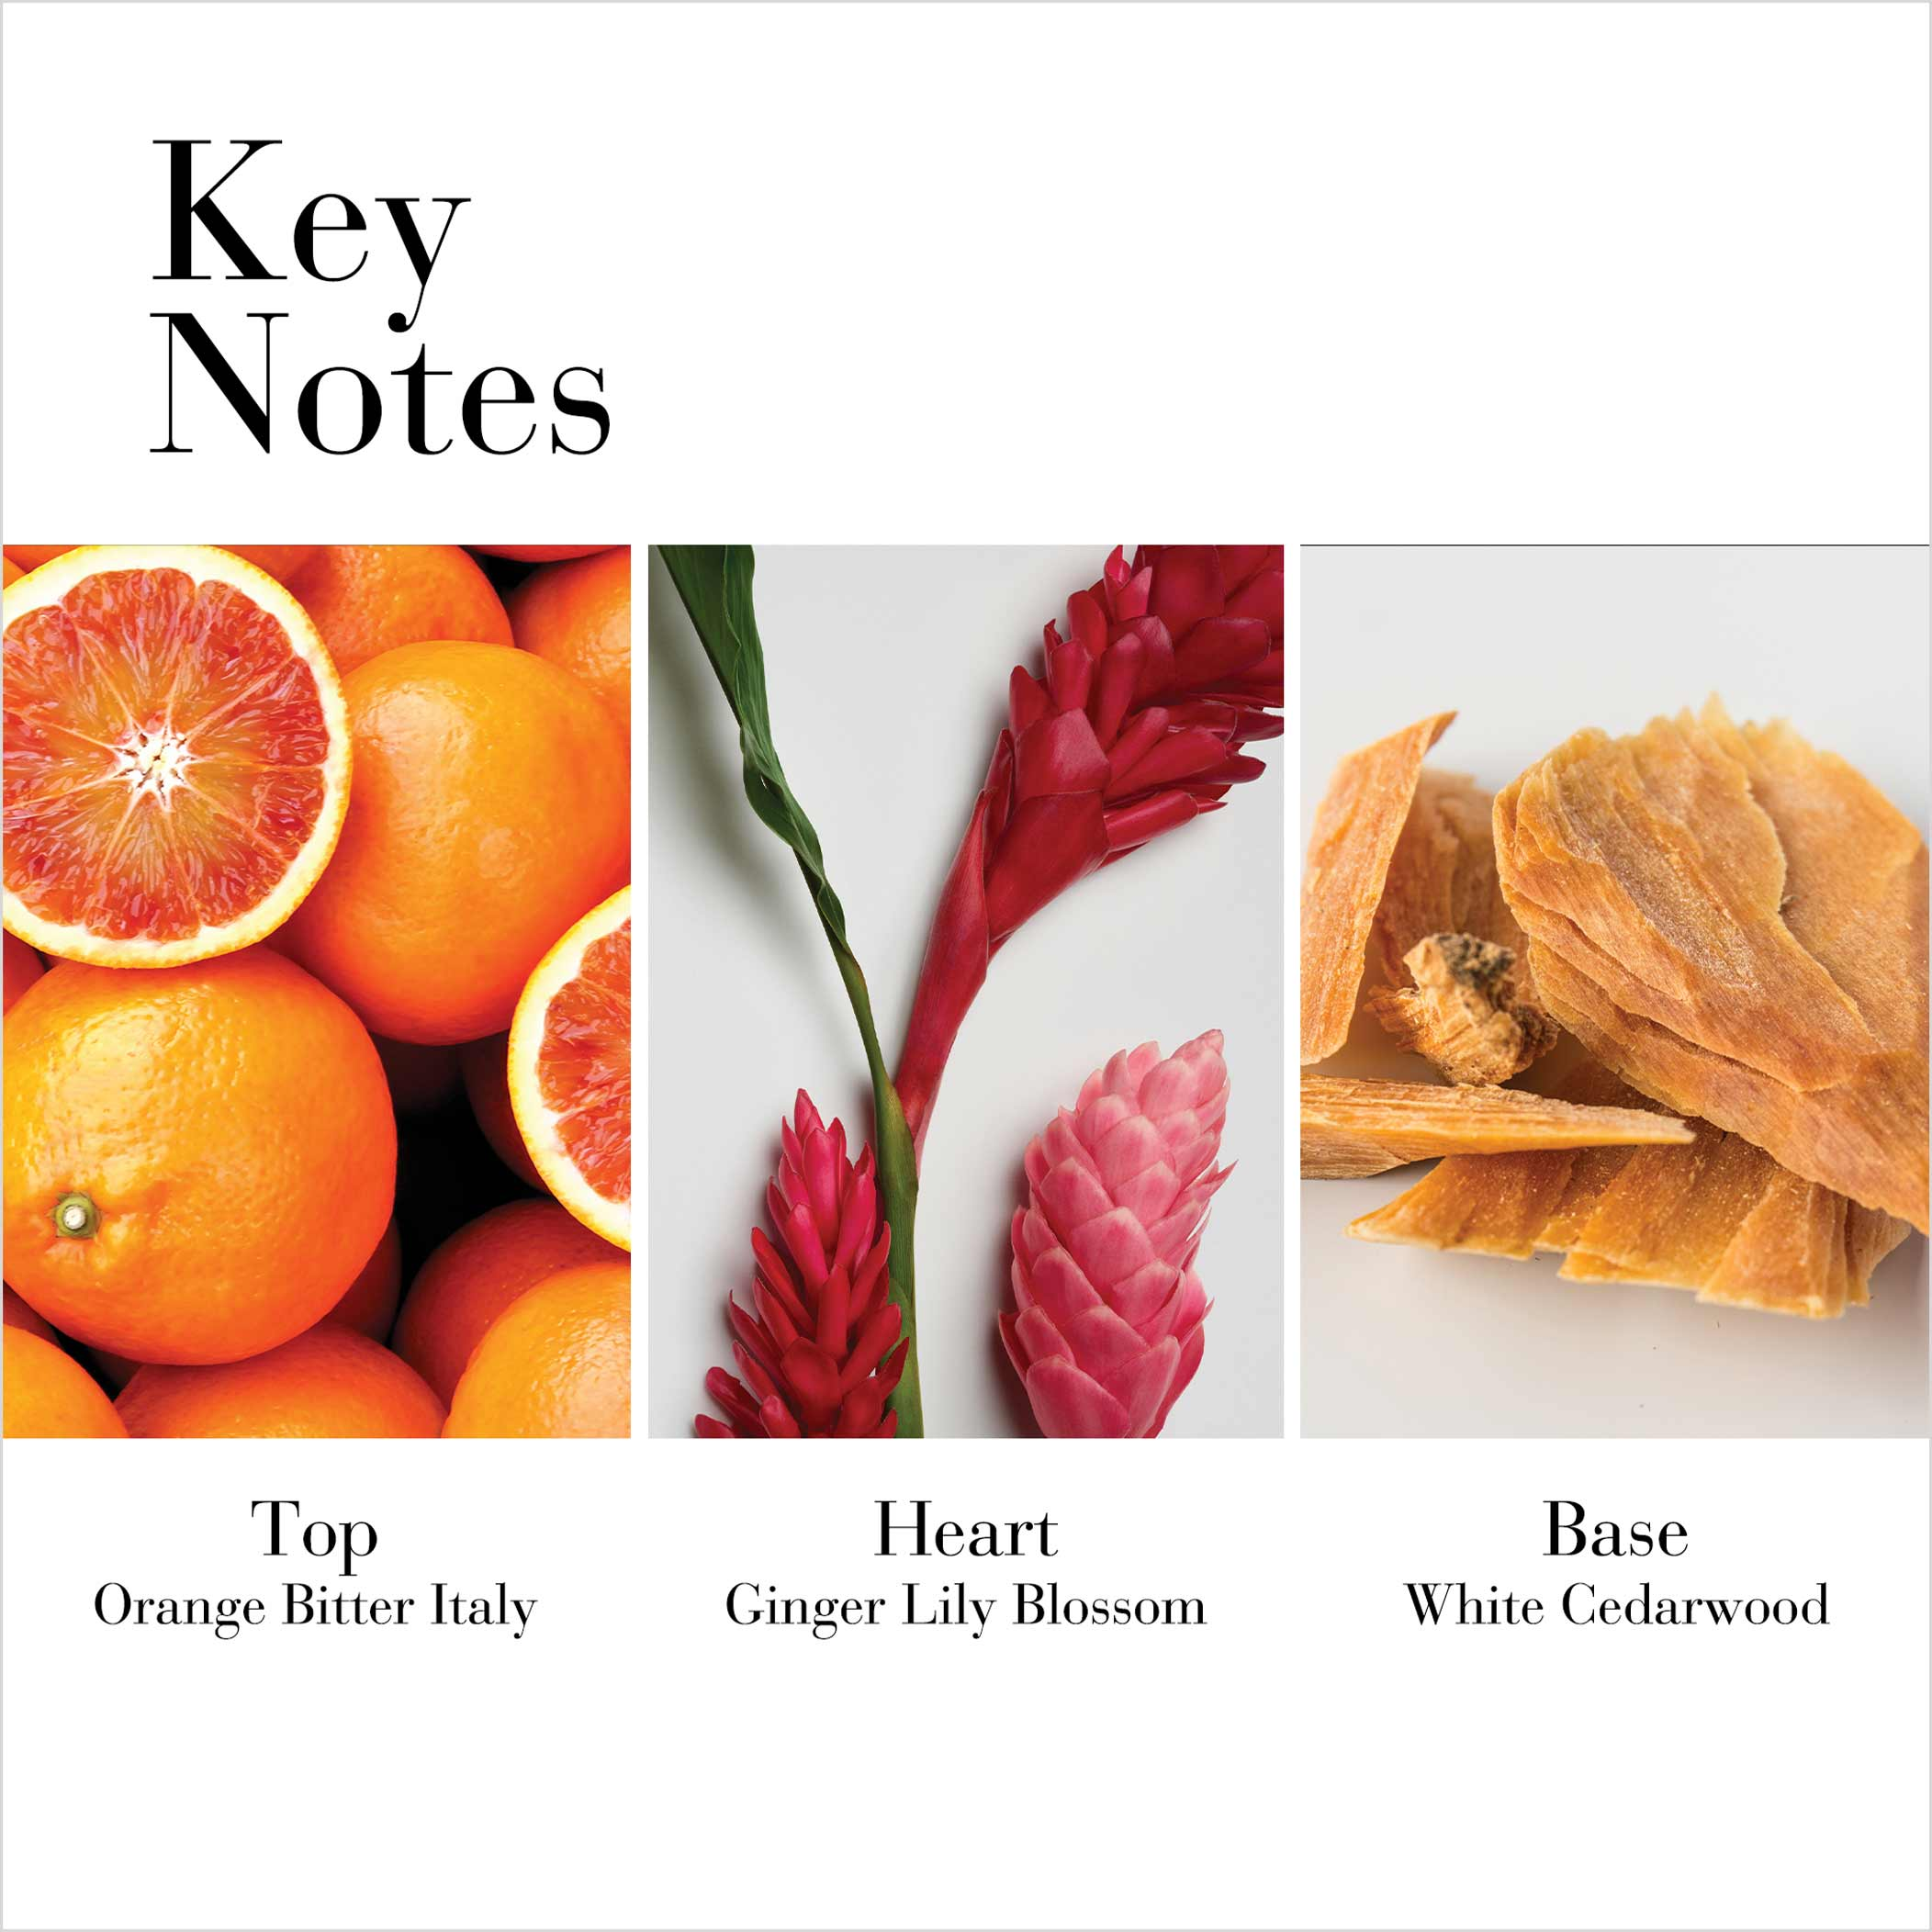 Key Notes- Orange Bitter Italy, Ginger Lily Blossom, White Cedarwood